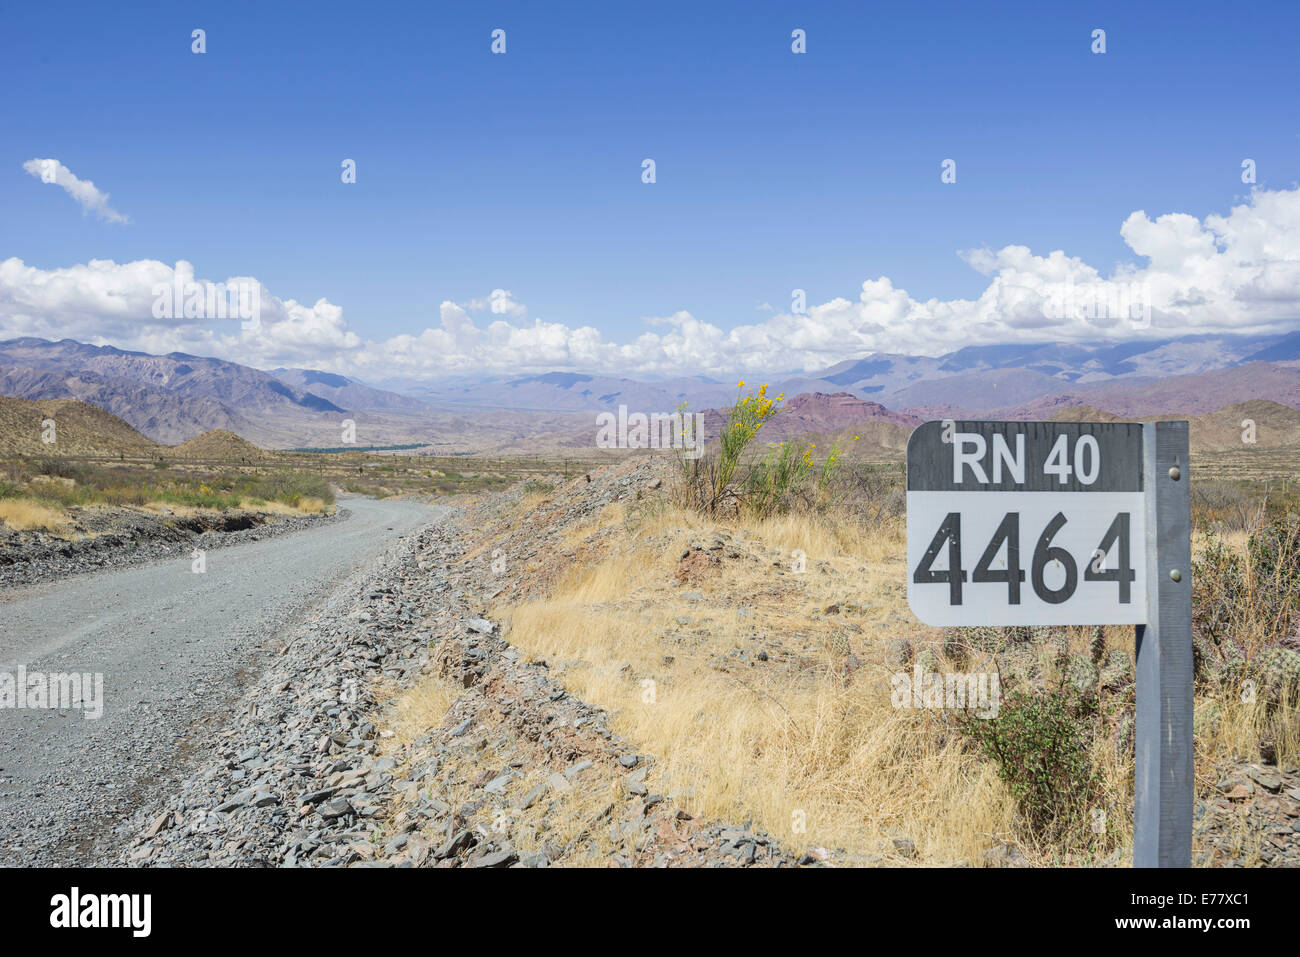 Sign with the road name on the Ruta Nacional 40, Ruta 40 or RN40 with kilometer marker, near Salta, Argentina - Stock Image